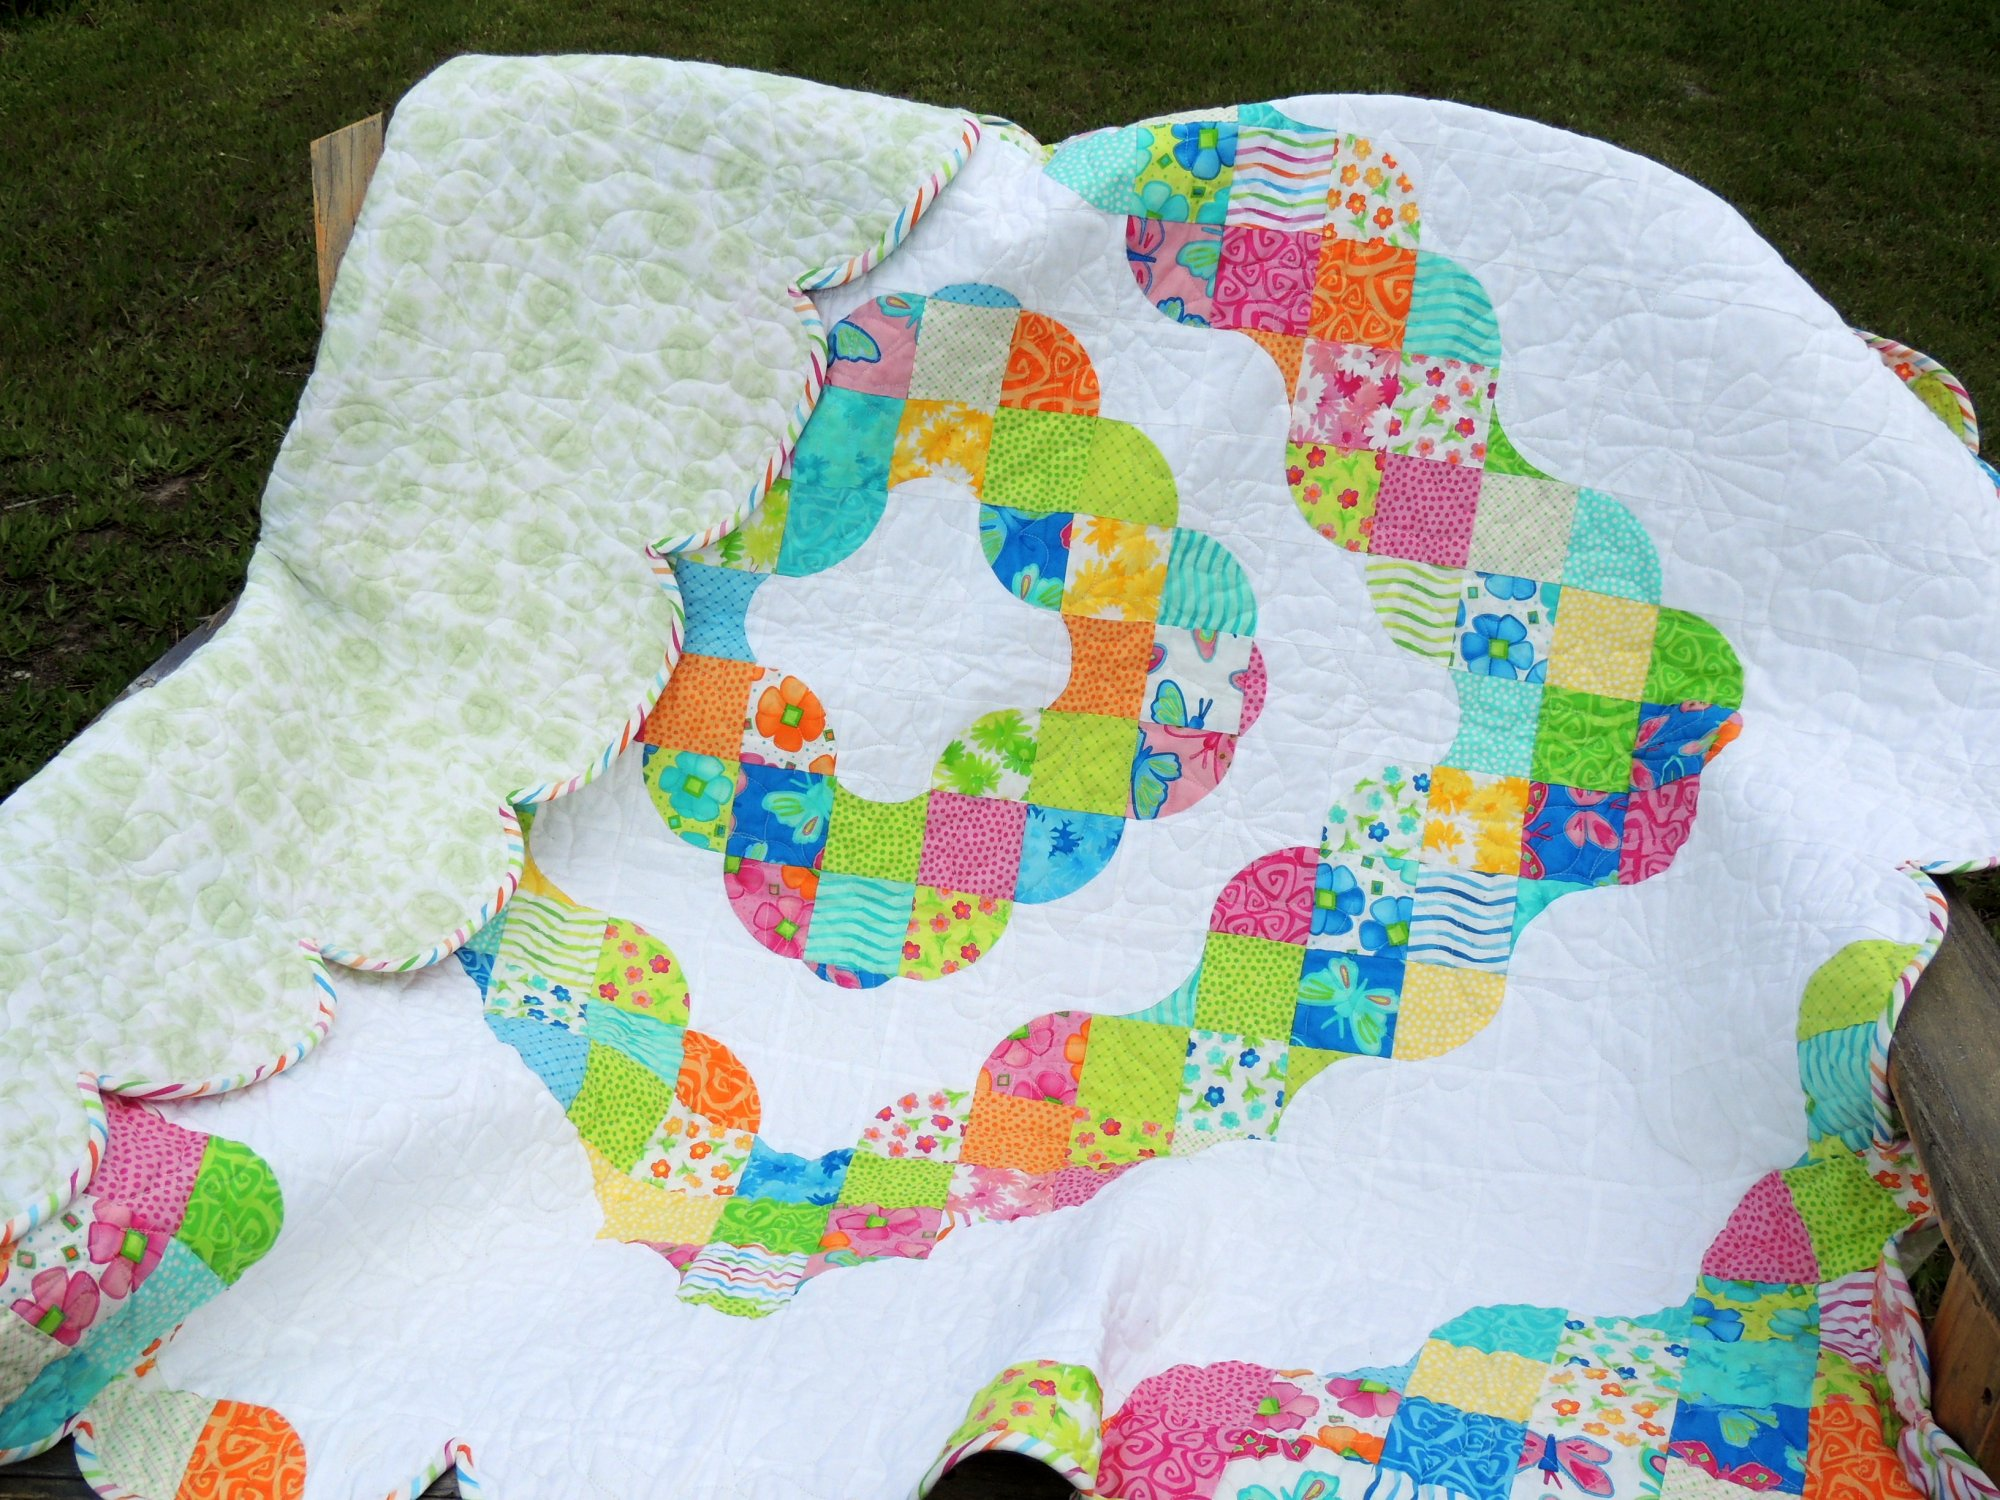 Summer Breeze Kid's Quilt